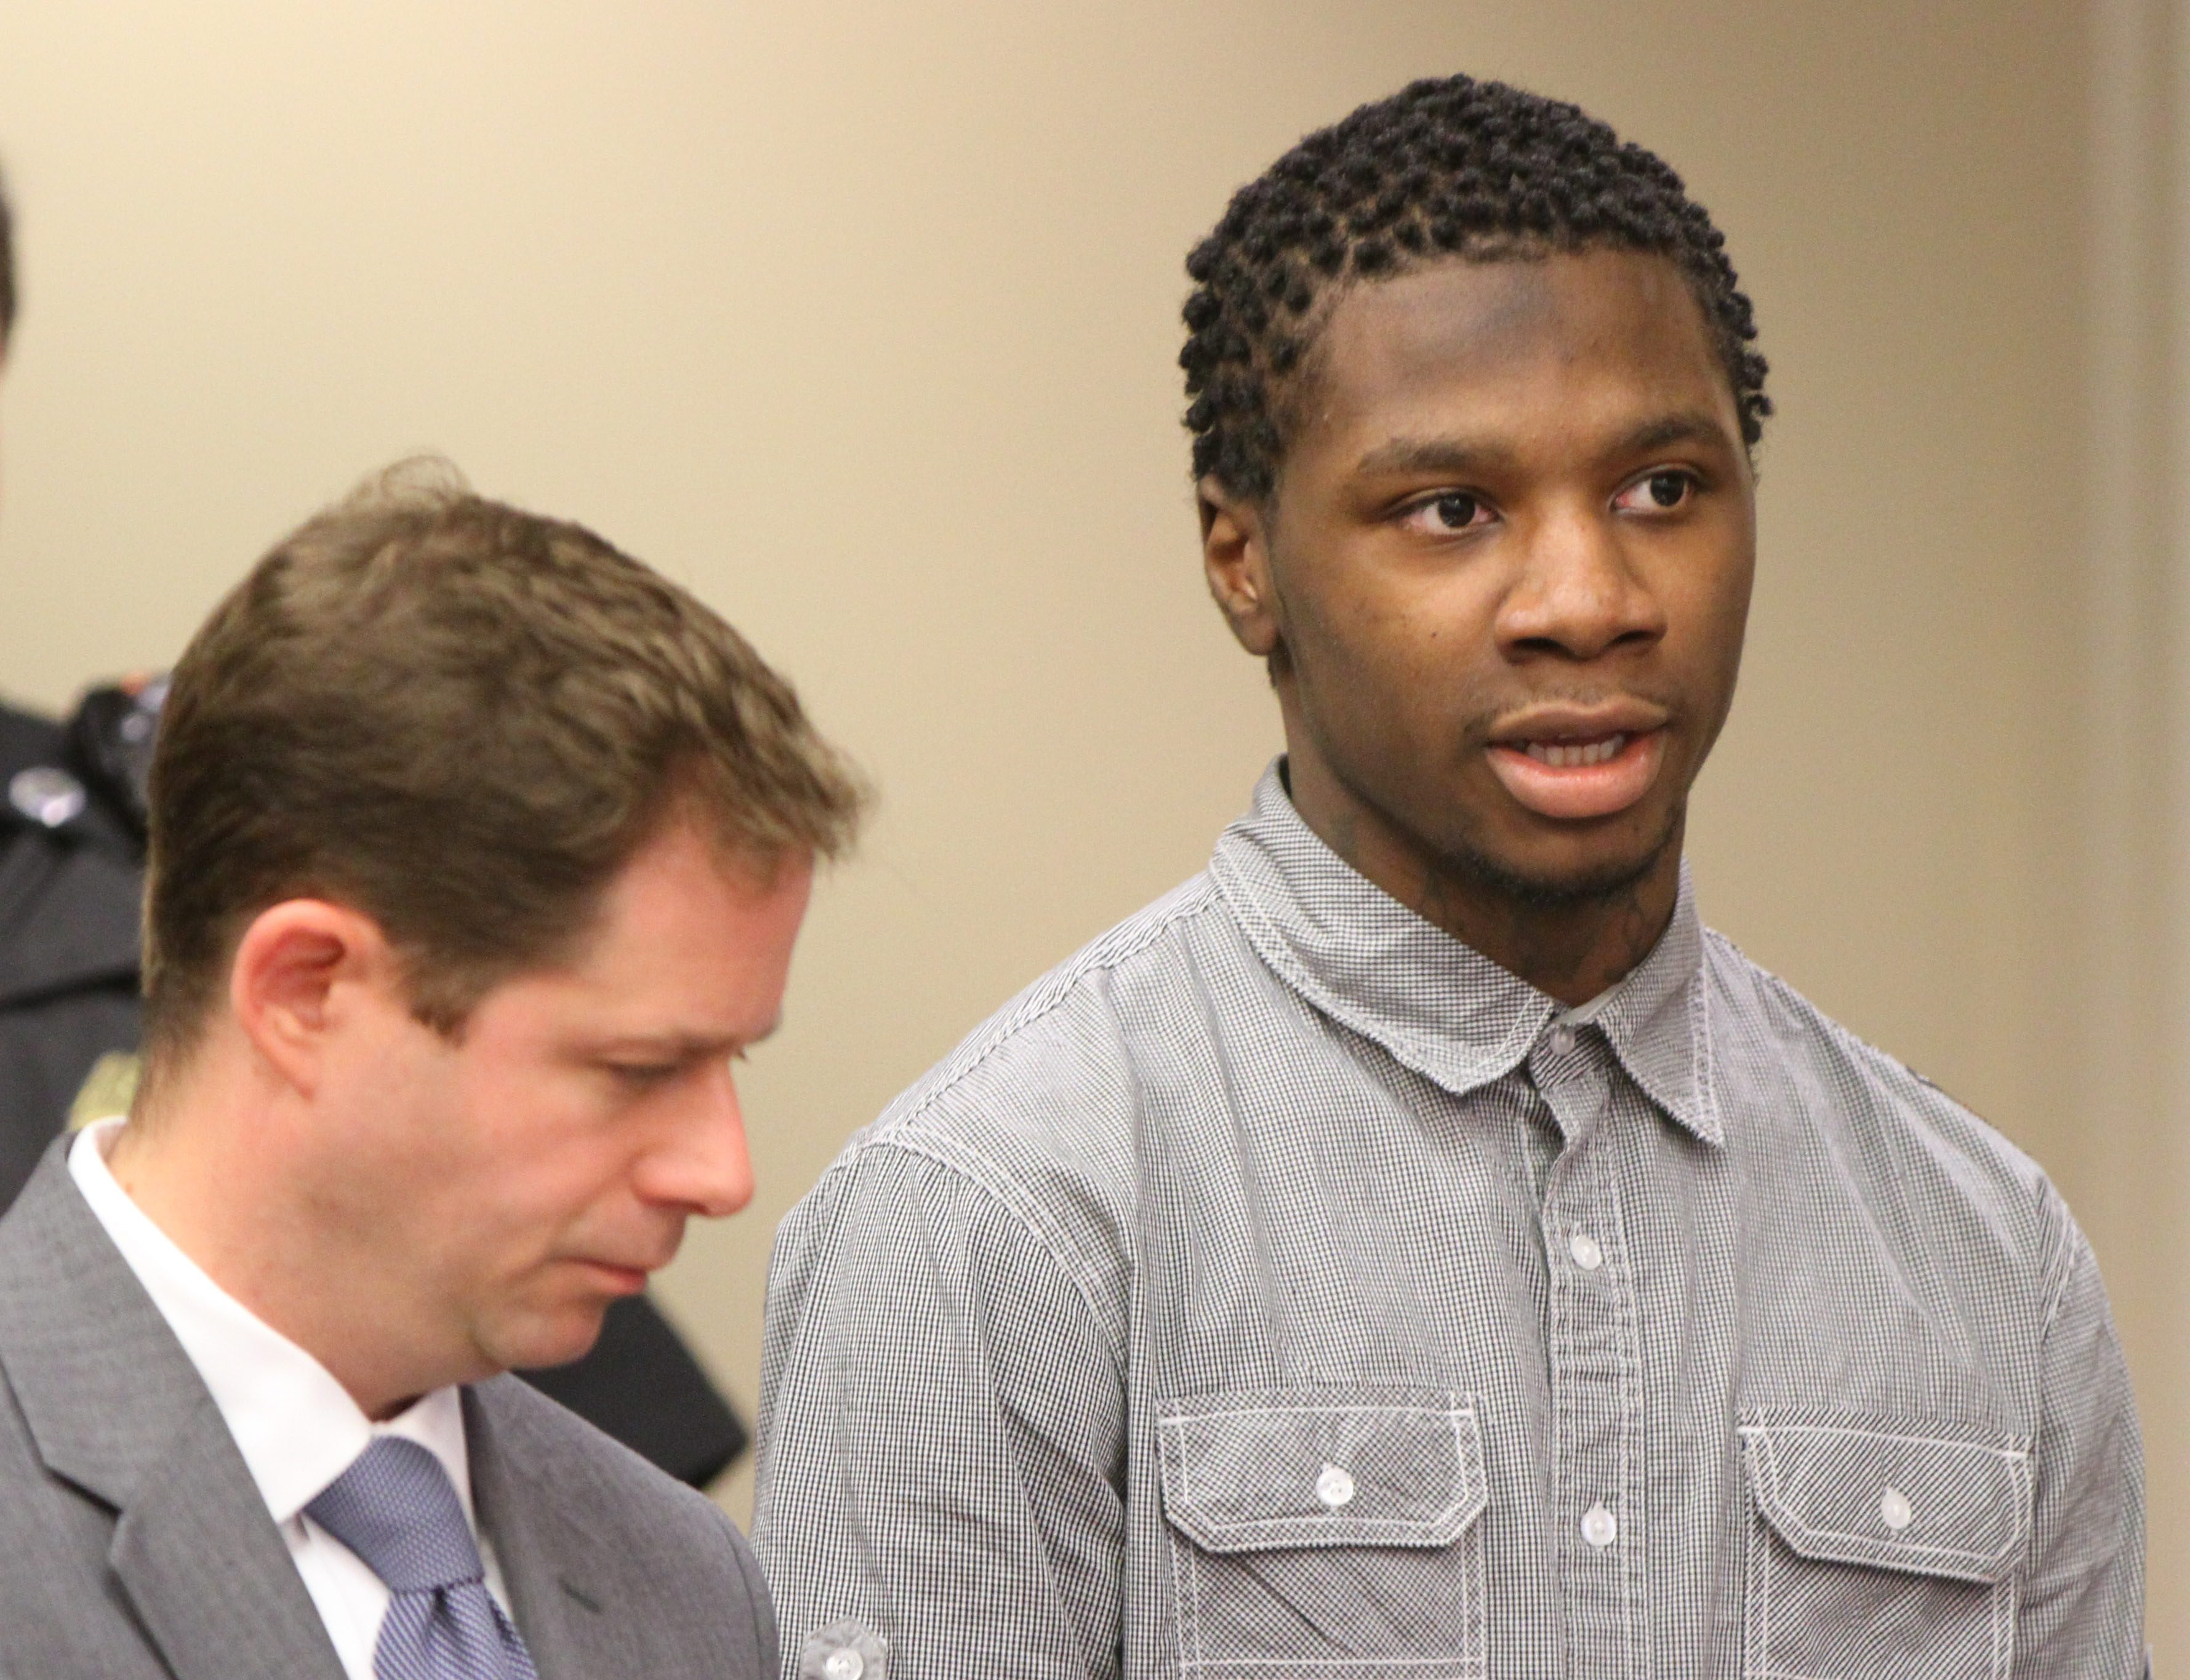 Damone Lewis, 19, has 10 years added to life term in 2012 fatal shooting of man.